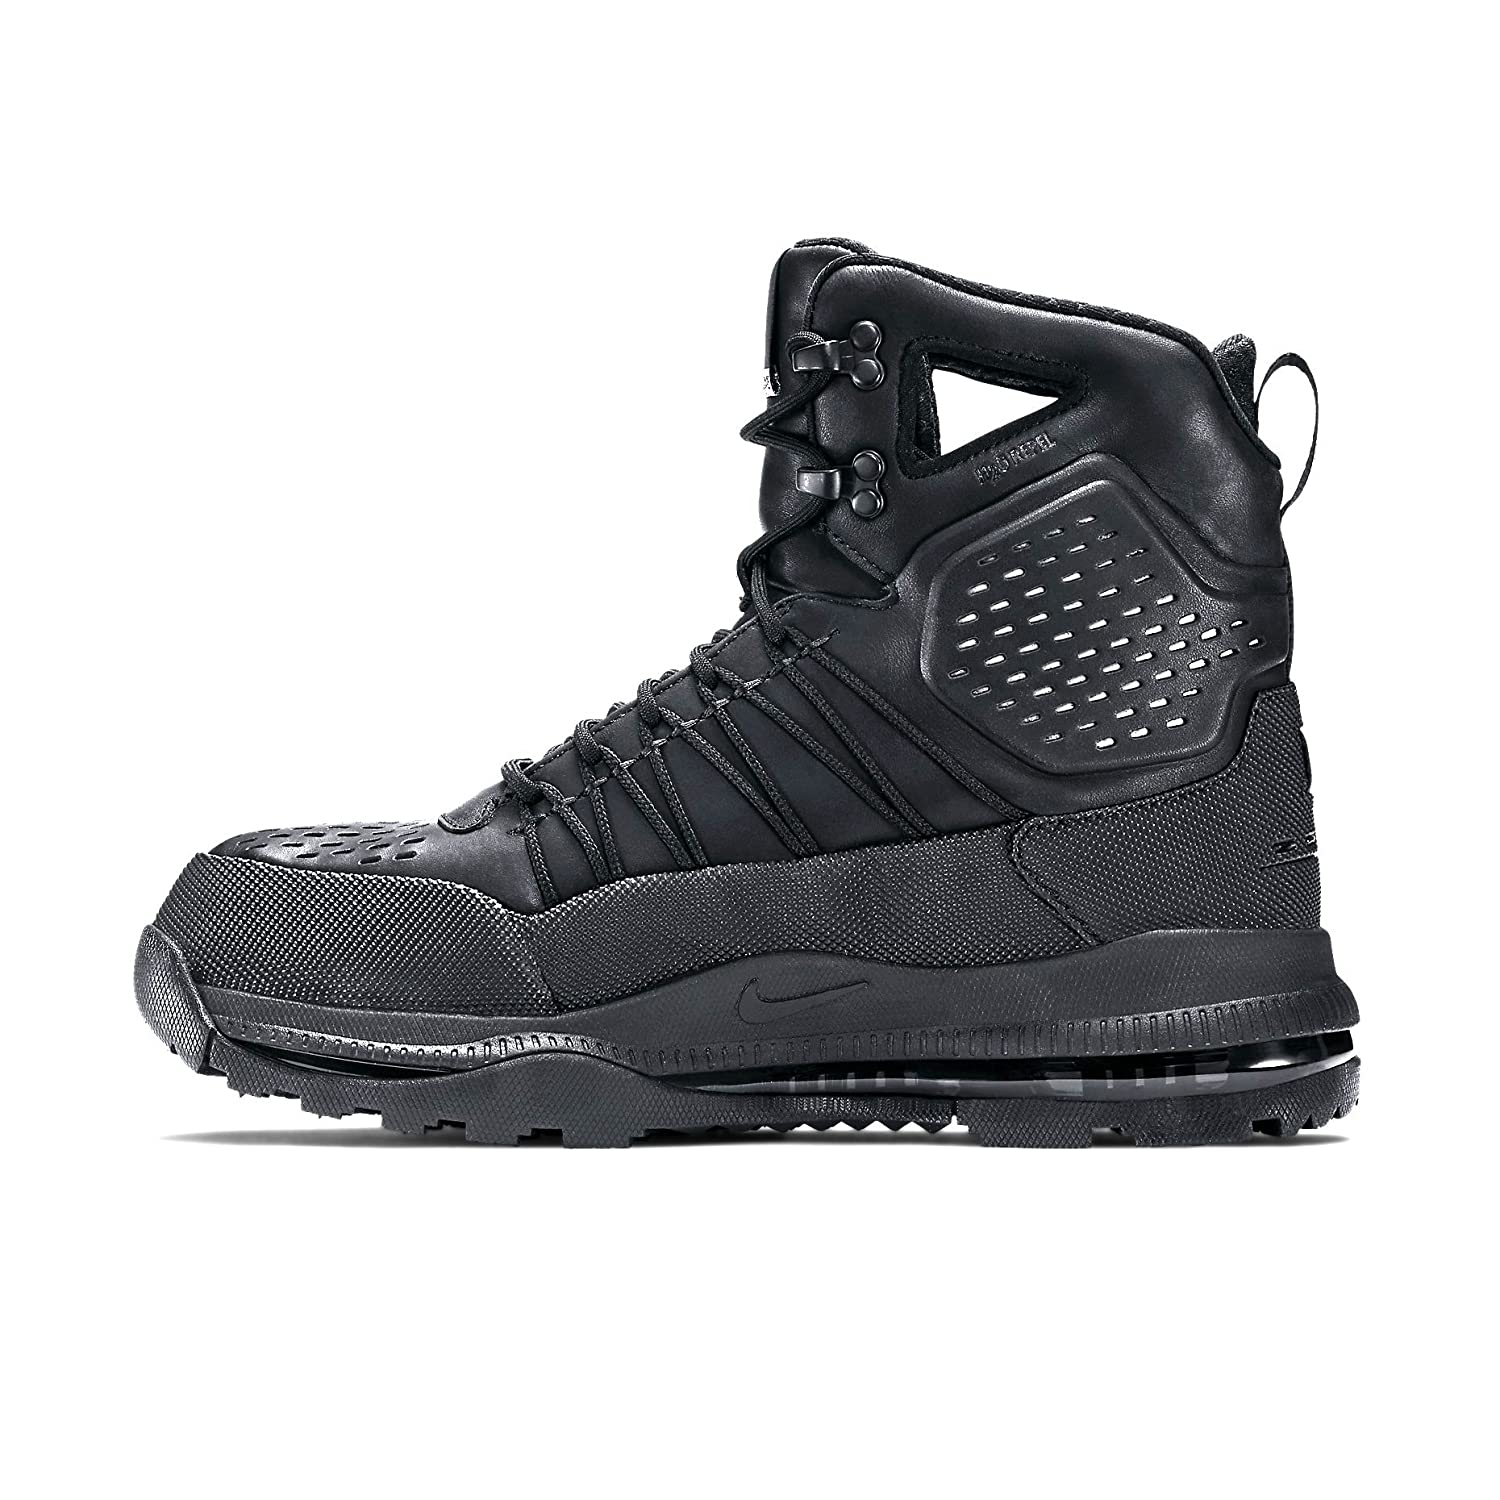 Nike ACG Zoom Superdome Black 3M Boots Sneakers 654886-040_8.5: Amazon.ca:  Shoes & Handbags